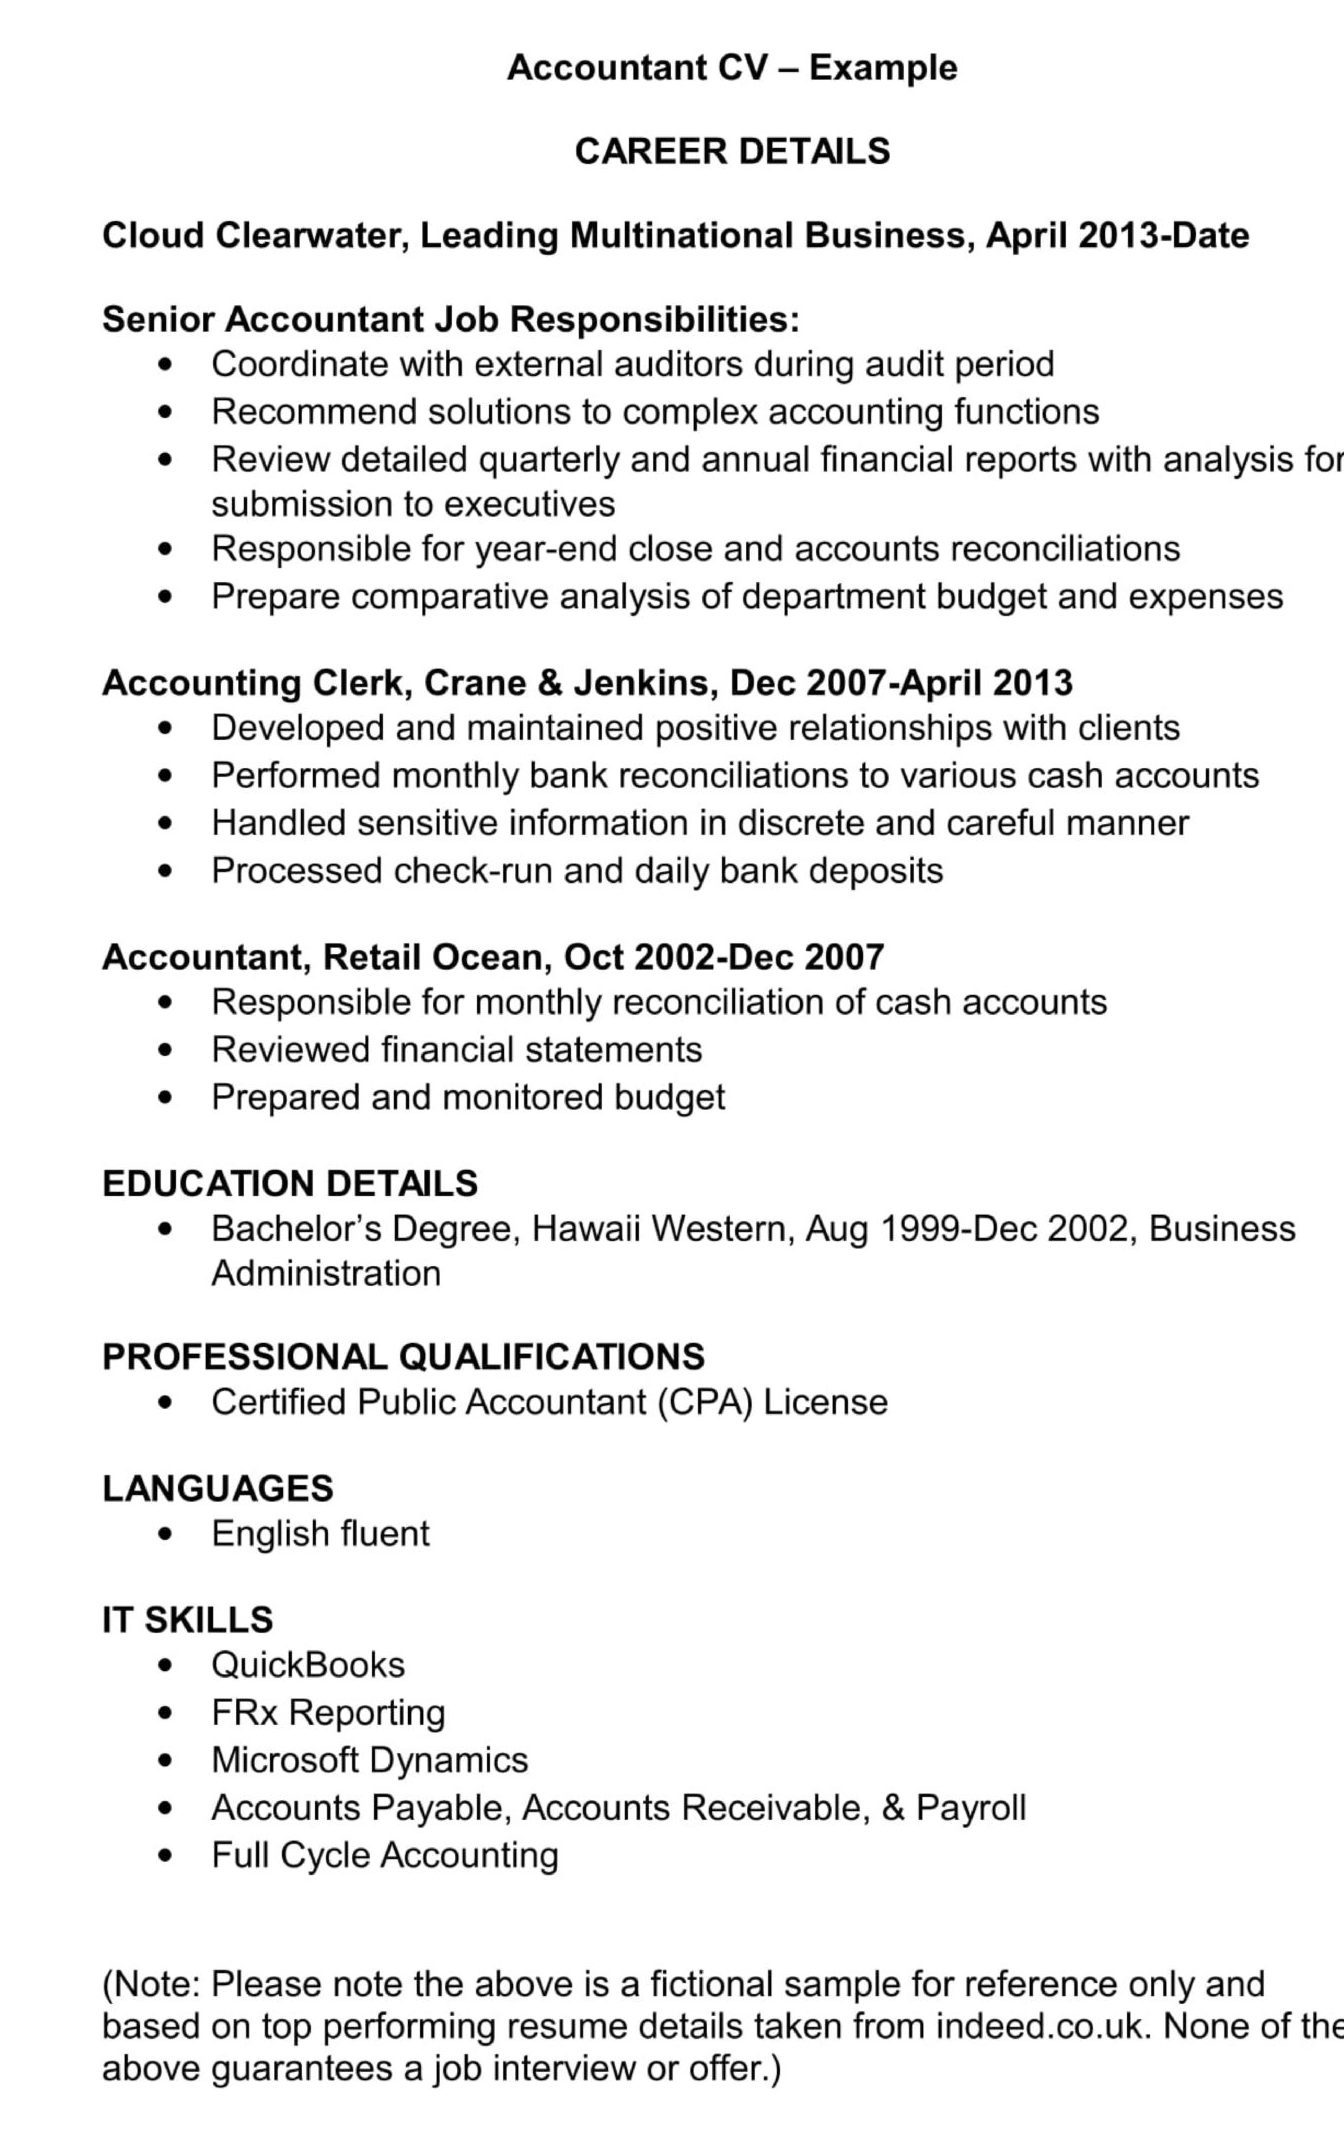 accountant cv template and examples renaix areas of expertise for resume scaled science Resume Areas Of Expertise For Accountant Resume